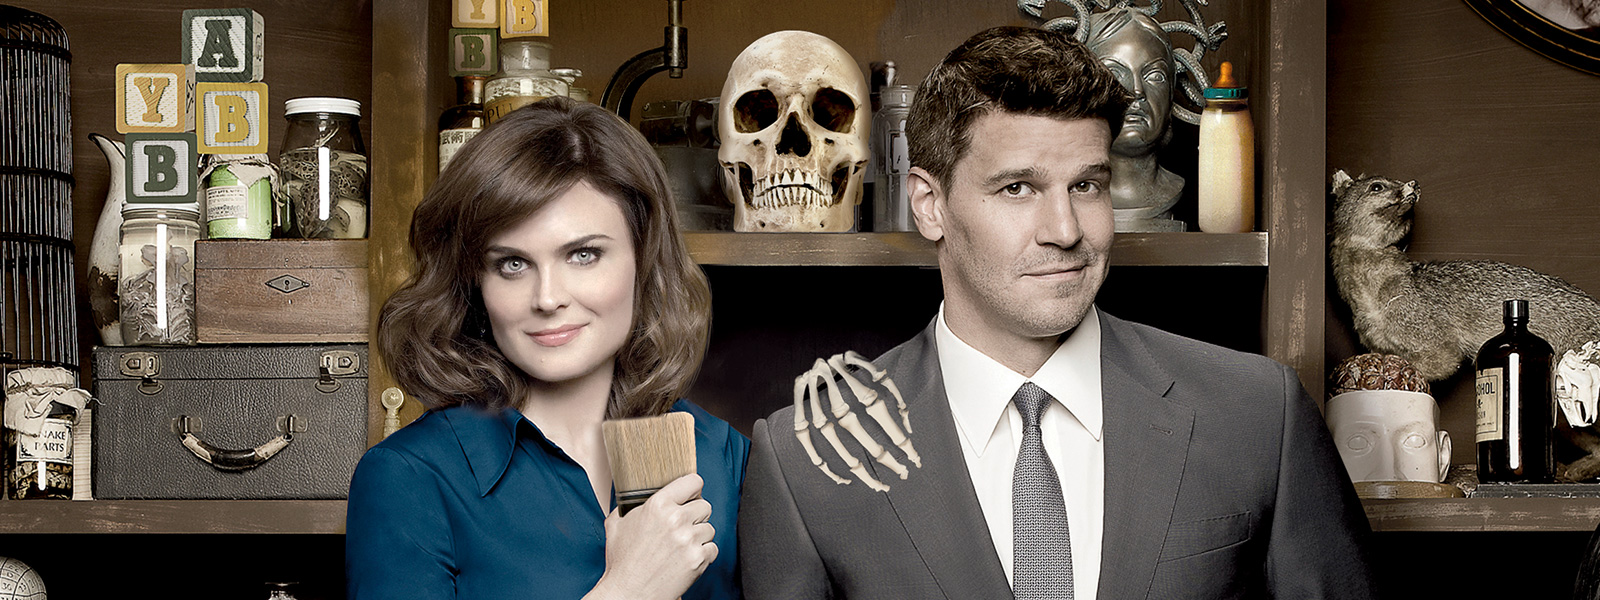 Bones tv show on fox renewed and canceled for season 12